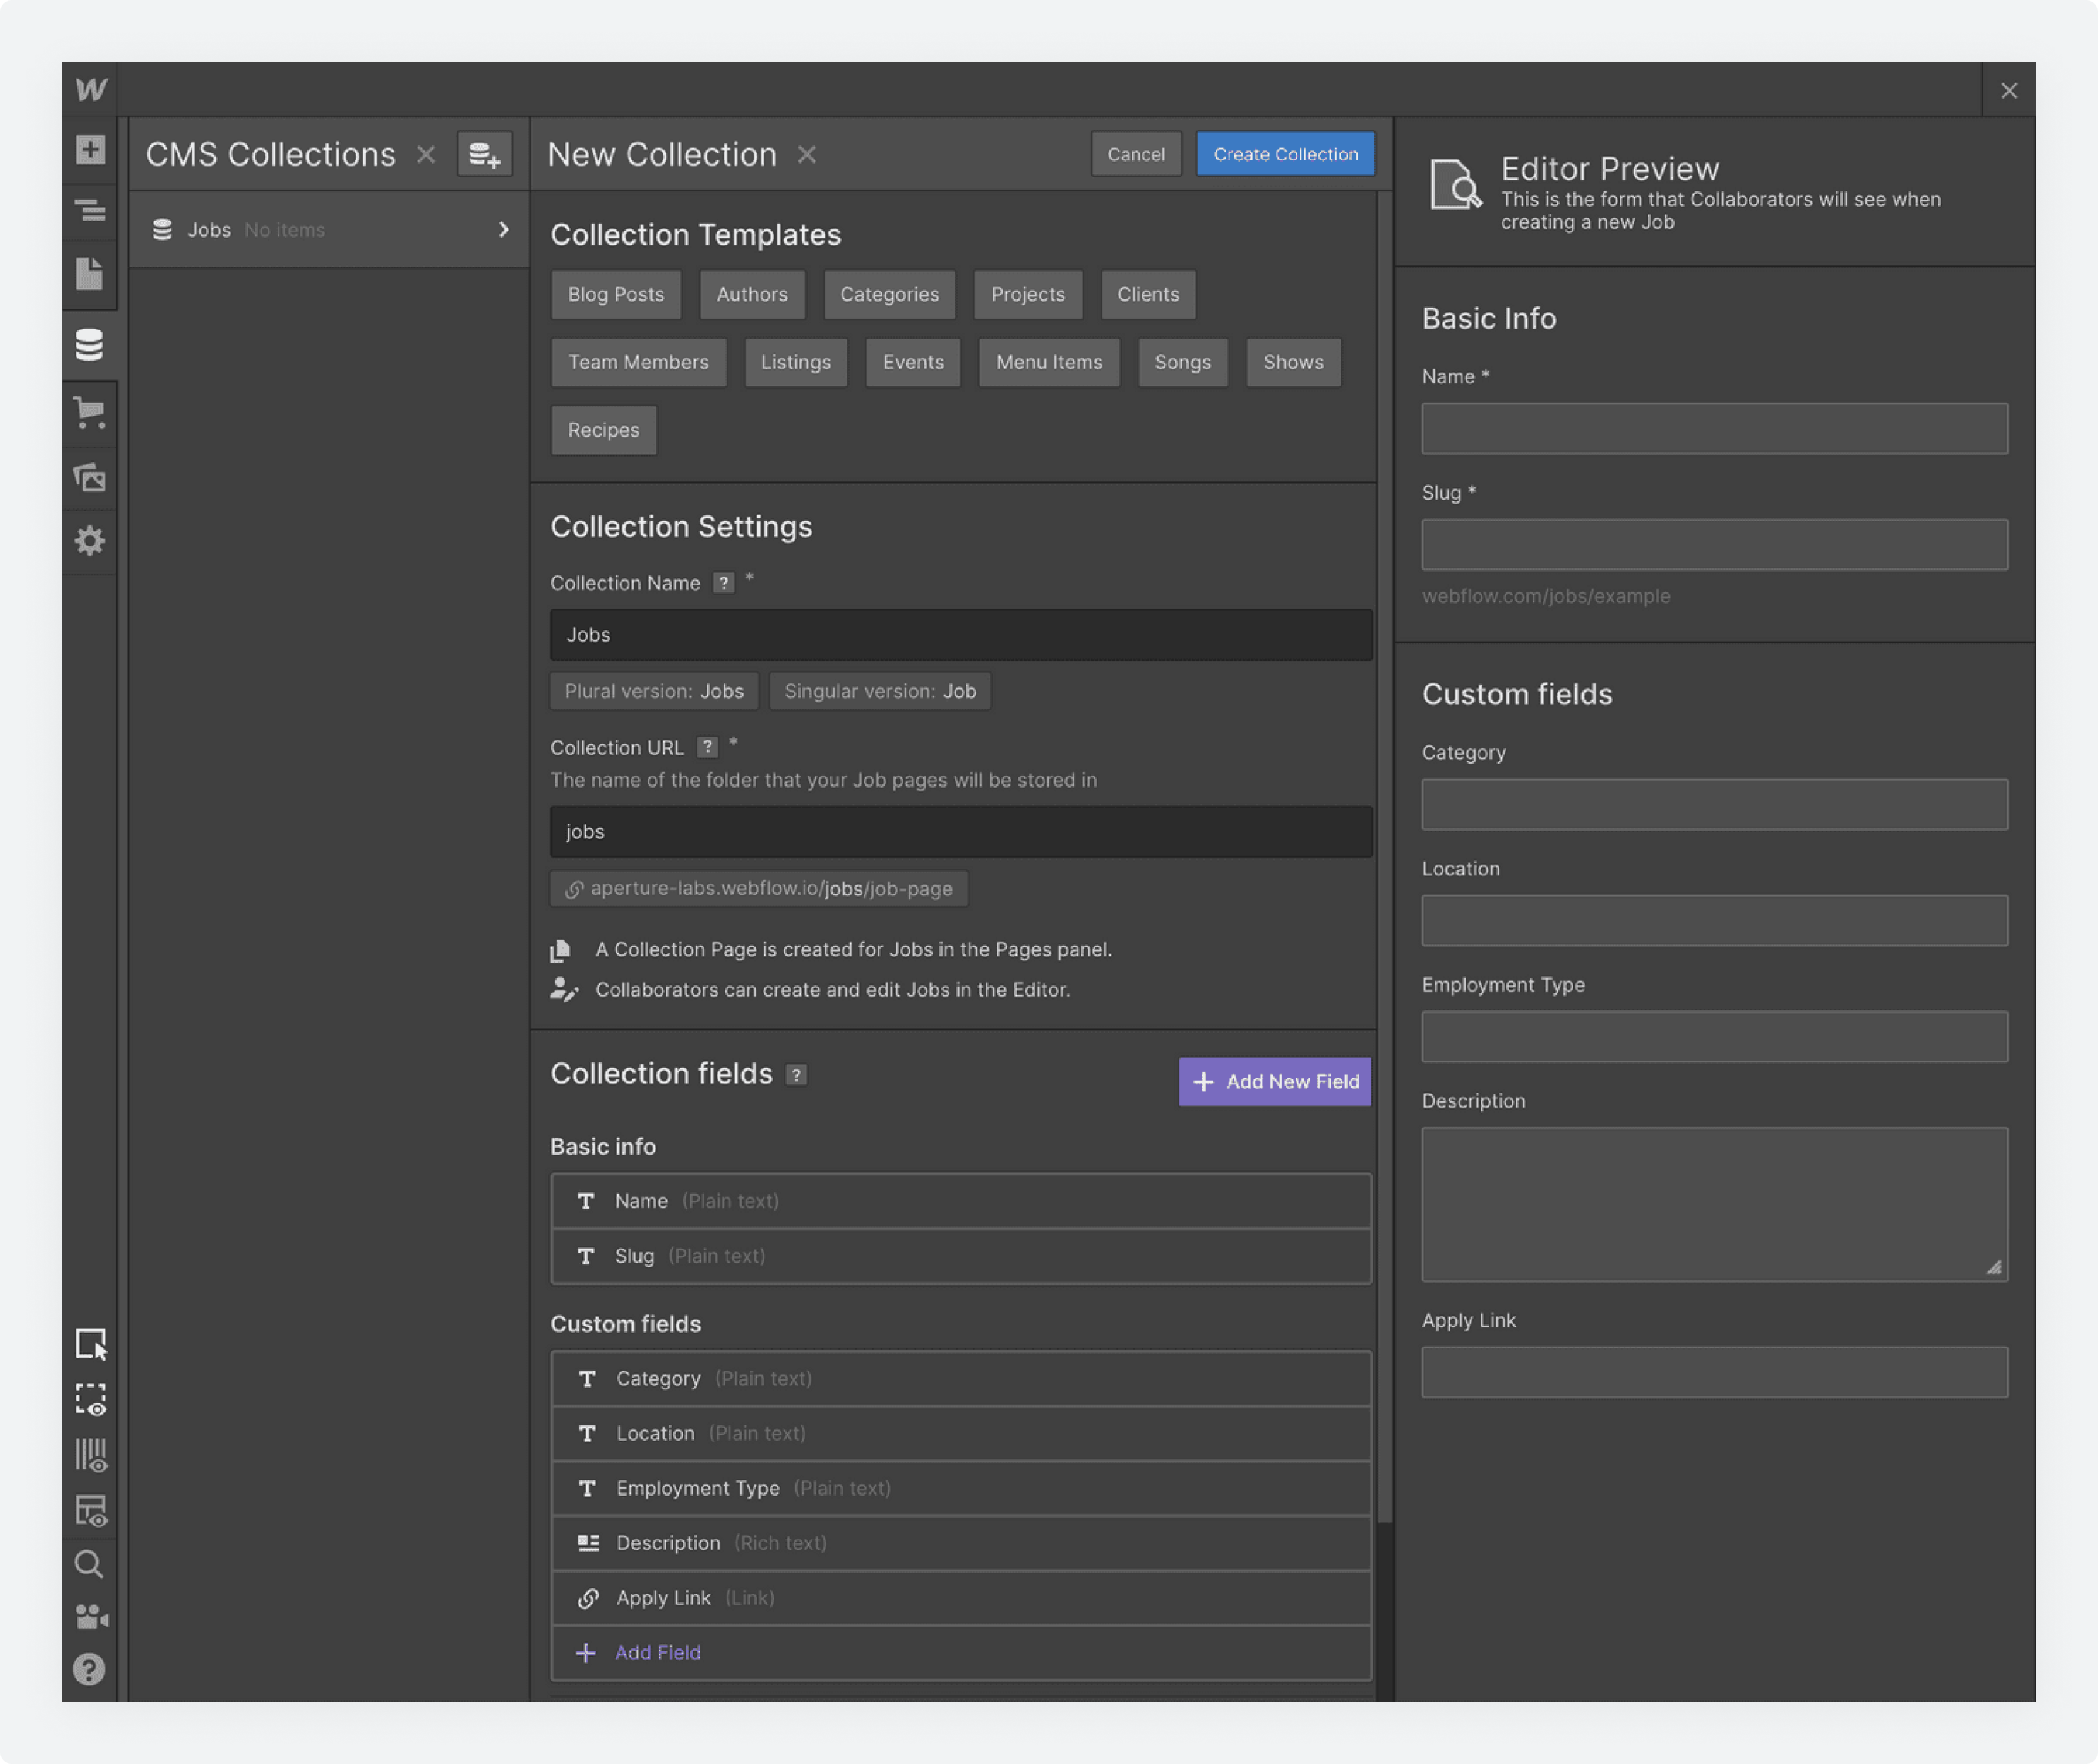 The New Collection screen in Webflow's CMS Collections page